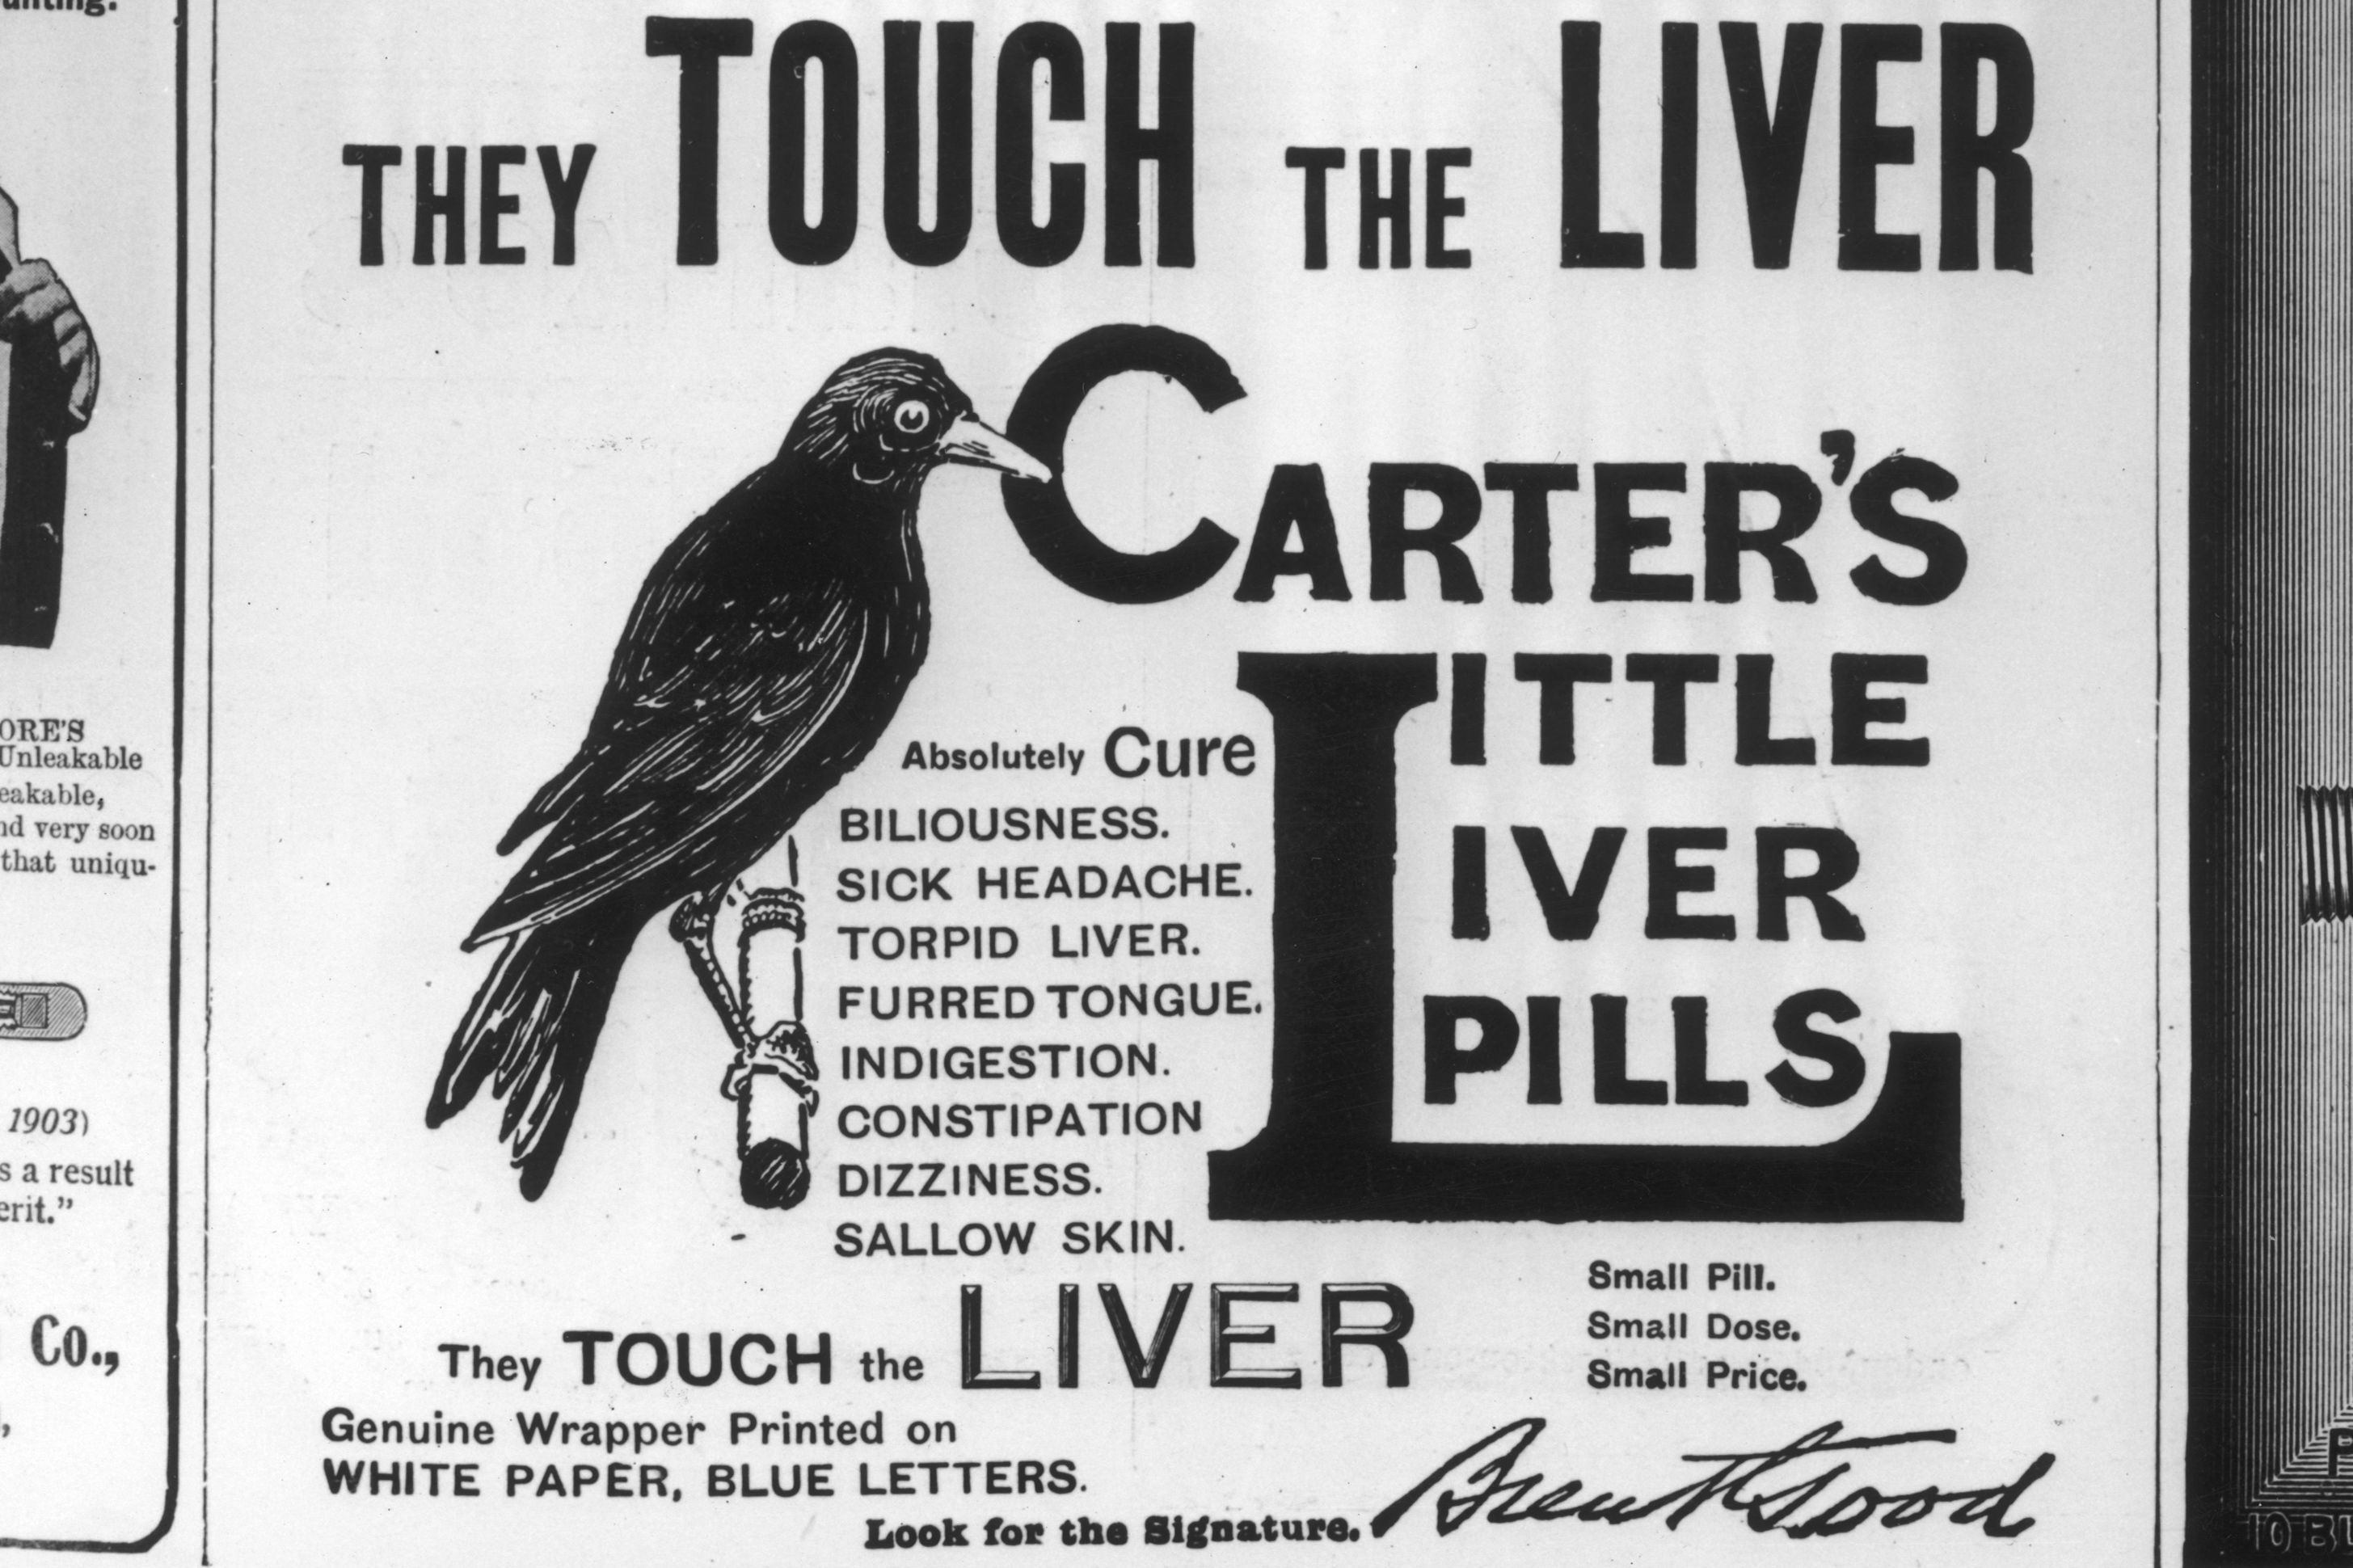 The History of Carter's Little Pills